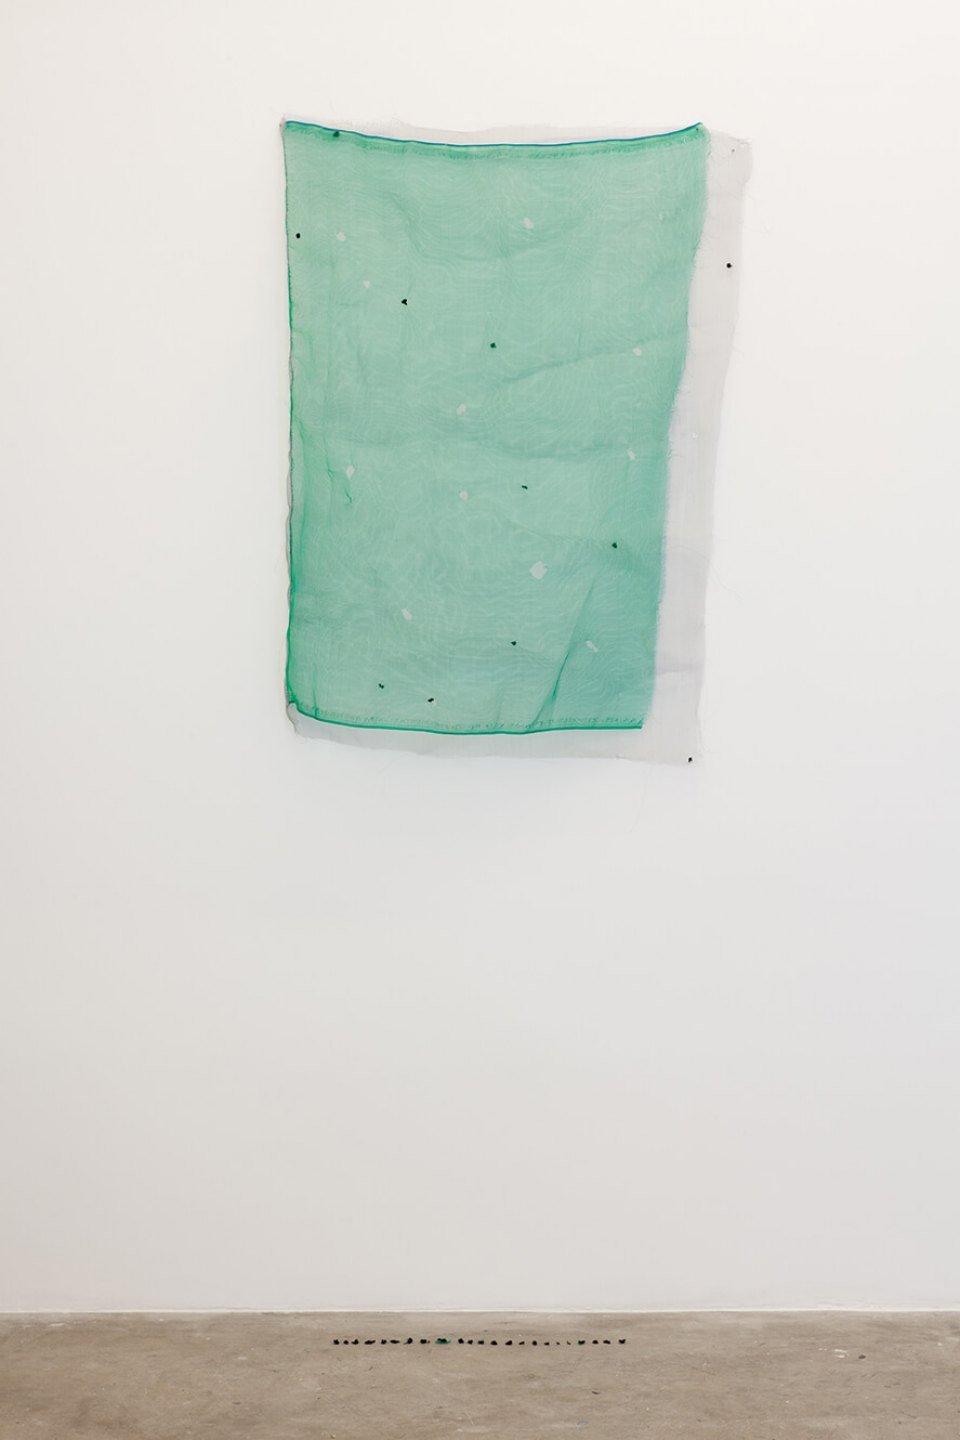 Adriano Costa, <em>We Are The Fly</em>, 2012, embroidery on nylon screen, 75 x 17 cm - Mendes Wood DM